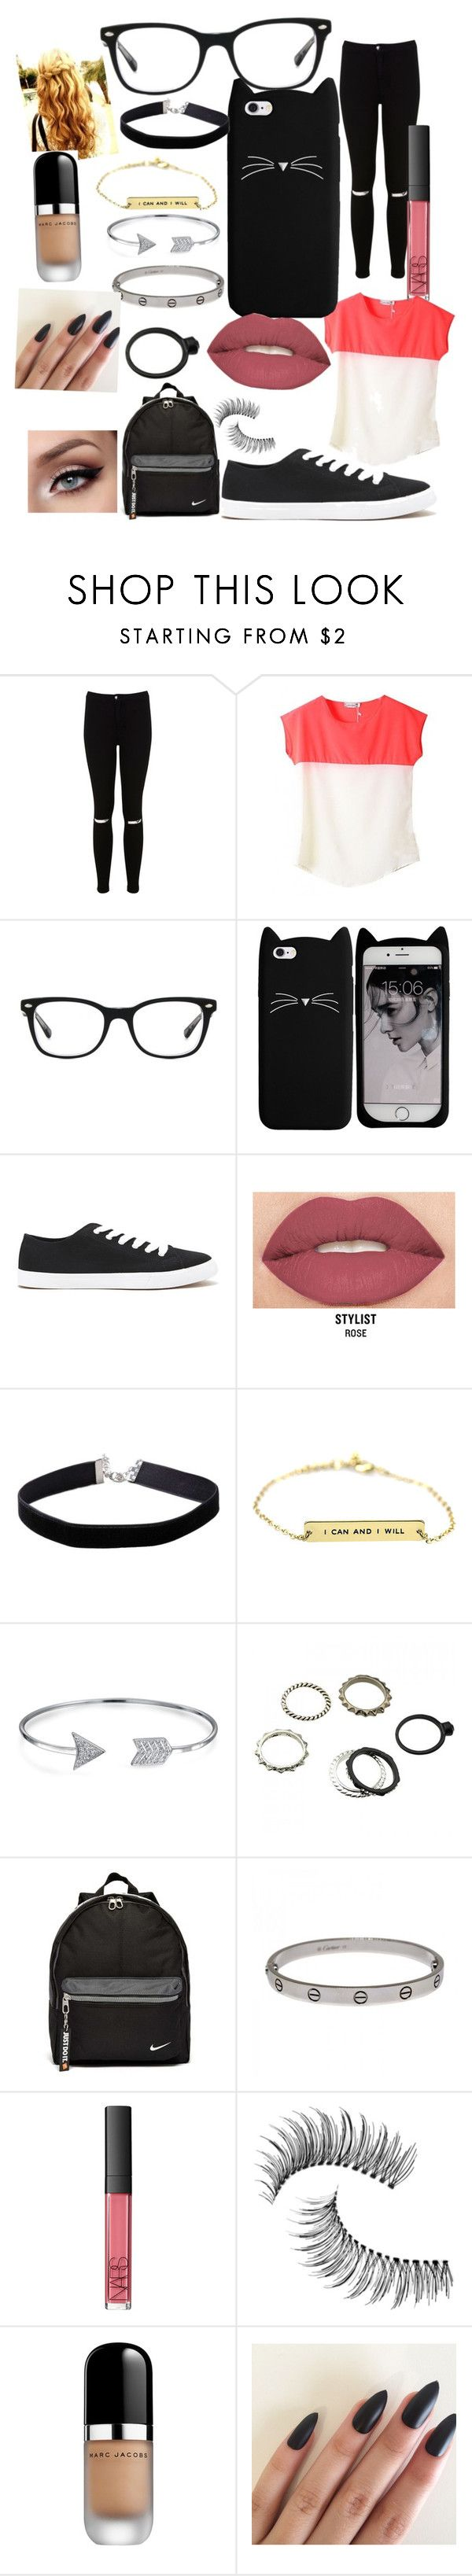 """•???•"" by benhemmings on Polyvore featuring Miss Selfridge, Ray-Ban, Forever 21, Smashbox, Bling Jewelry, NIKE, Cartier, NARS Cosmetics, Trish McEvoy and Marc Jacobs"